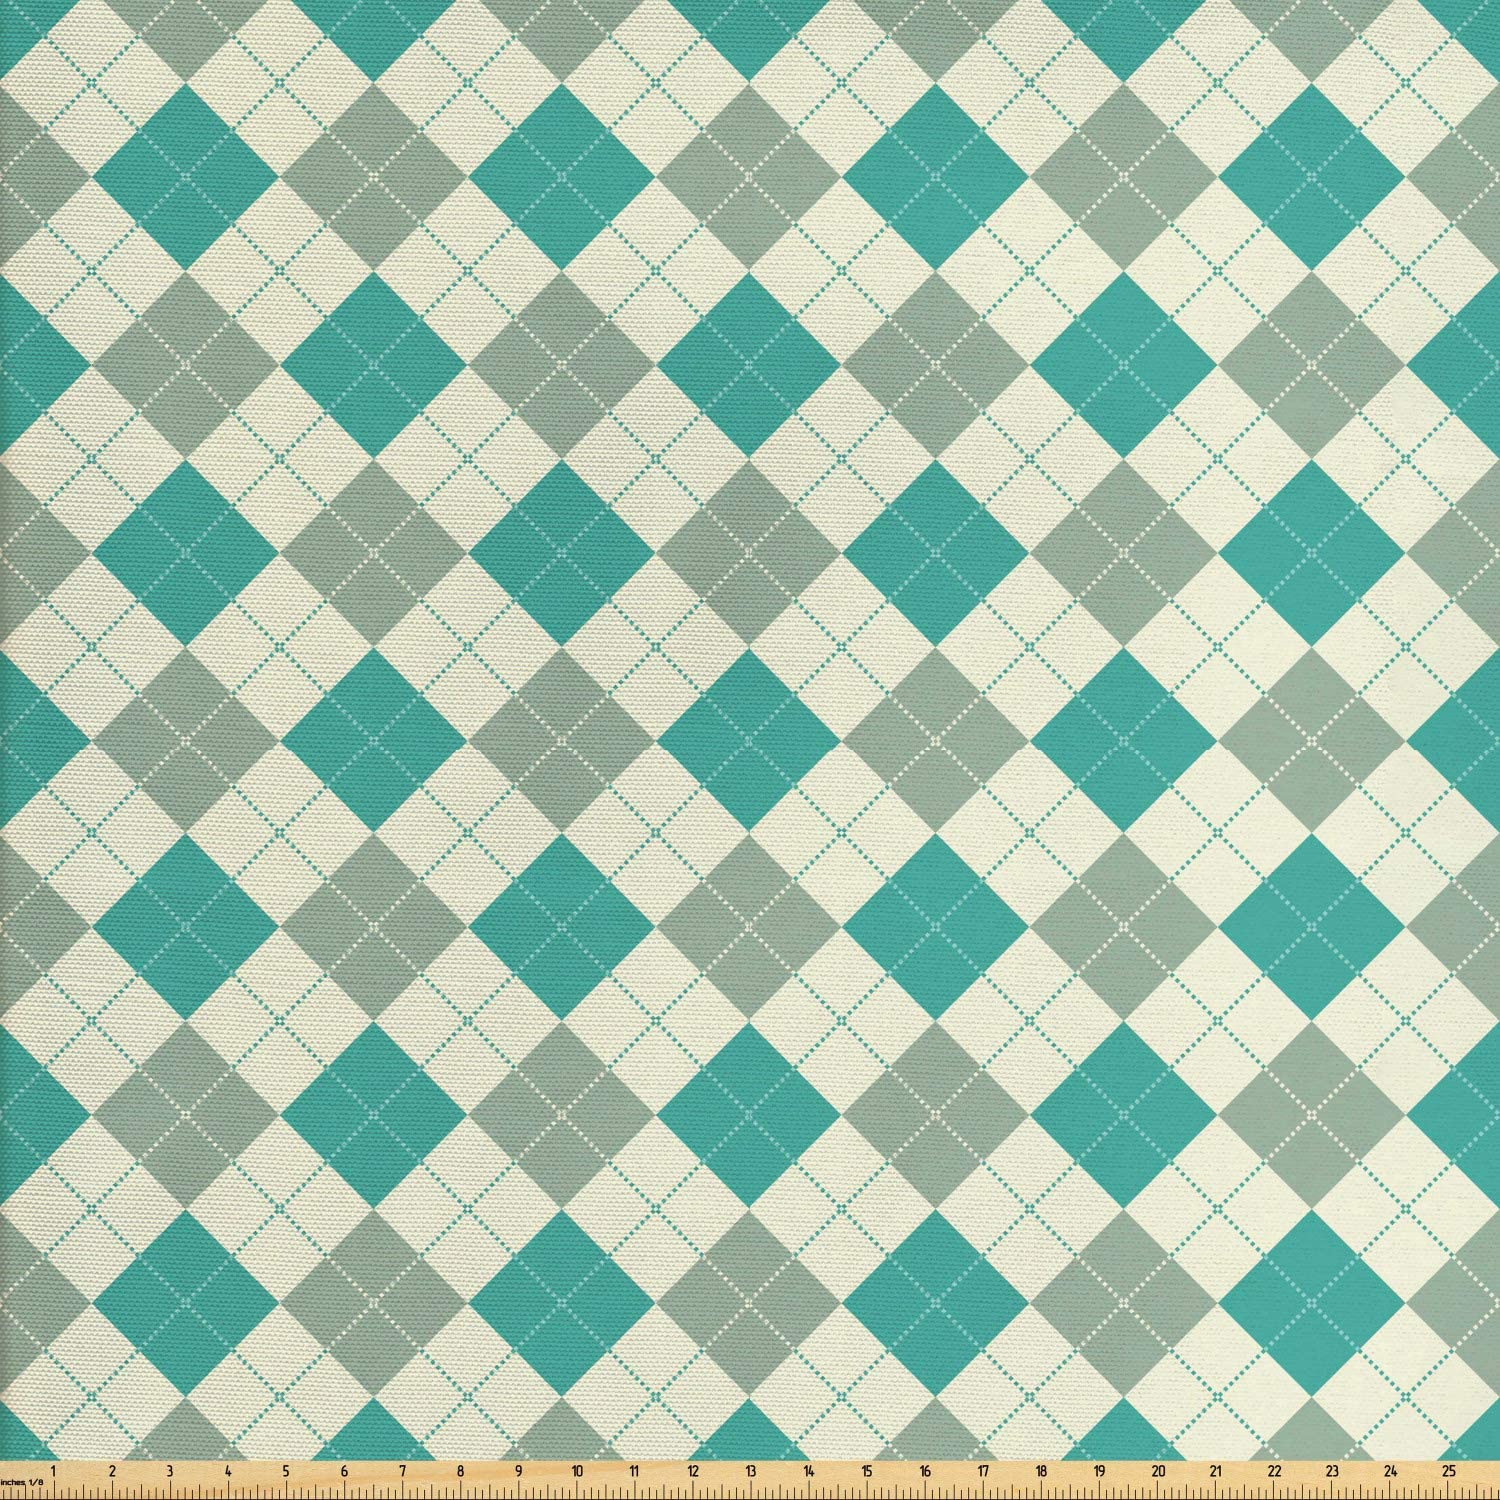 Ambesonne Plaid Fabric by The Yard, Traditional Gingham Like Pattern of Diagonal Squares and Dotted Lines, Decorative Fabric for Upholstery and Home Accents, 1 Yard, Dark Seafoam and Ivory